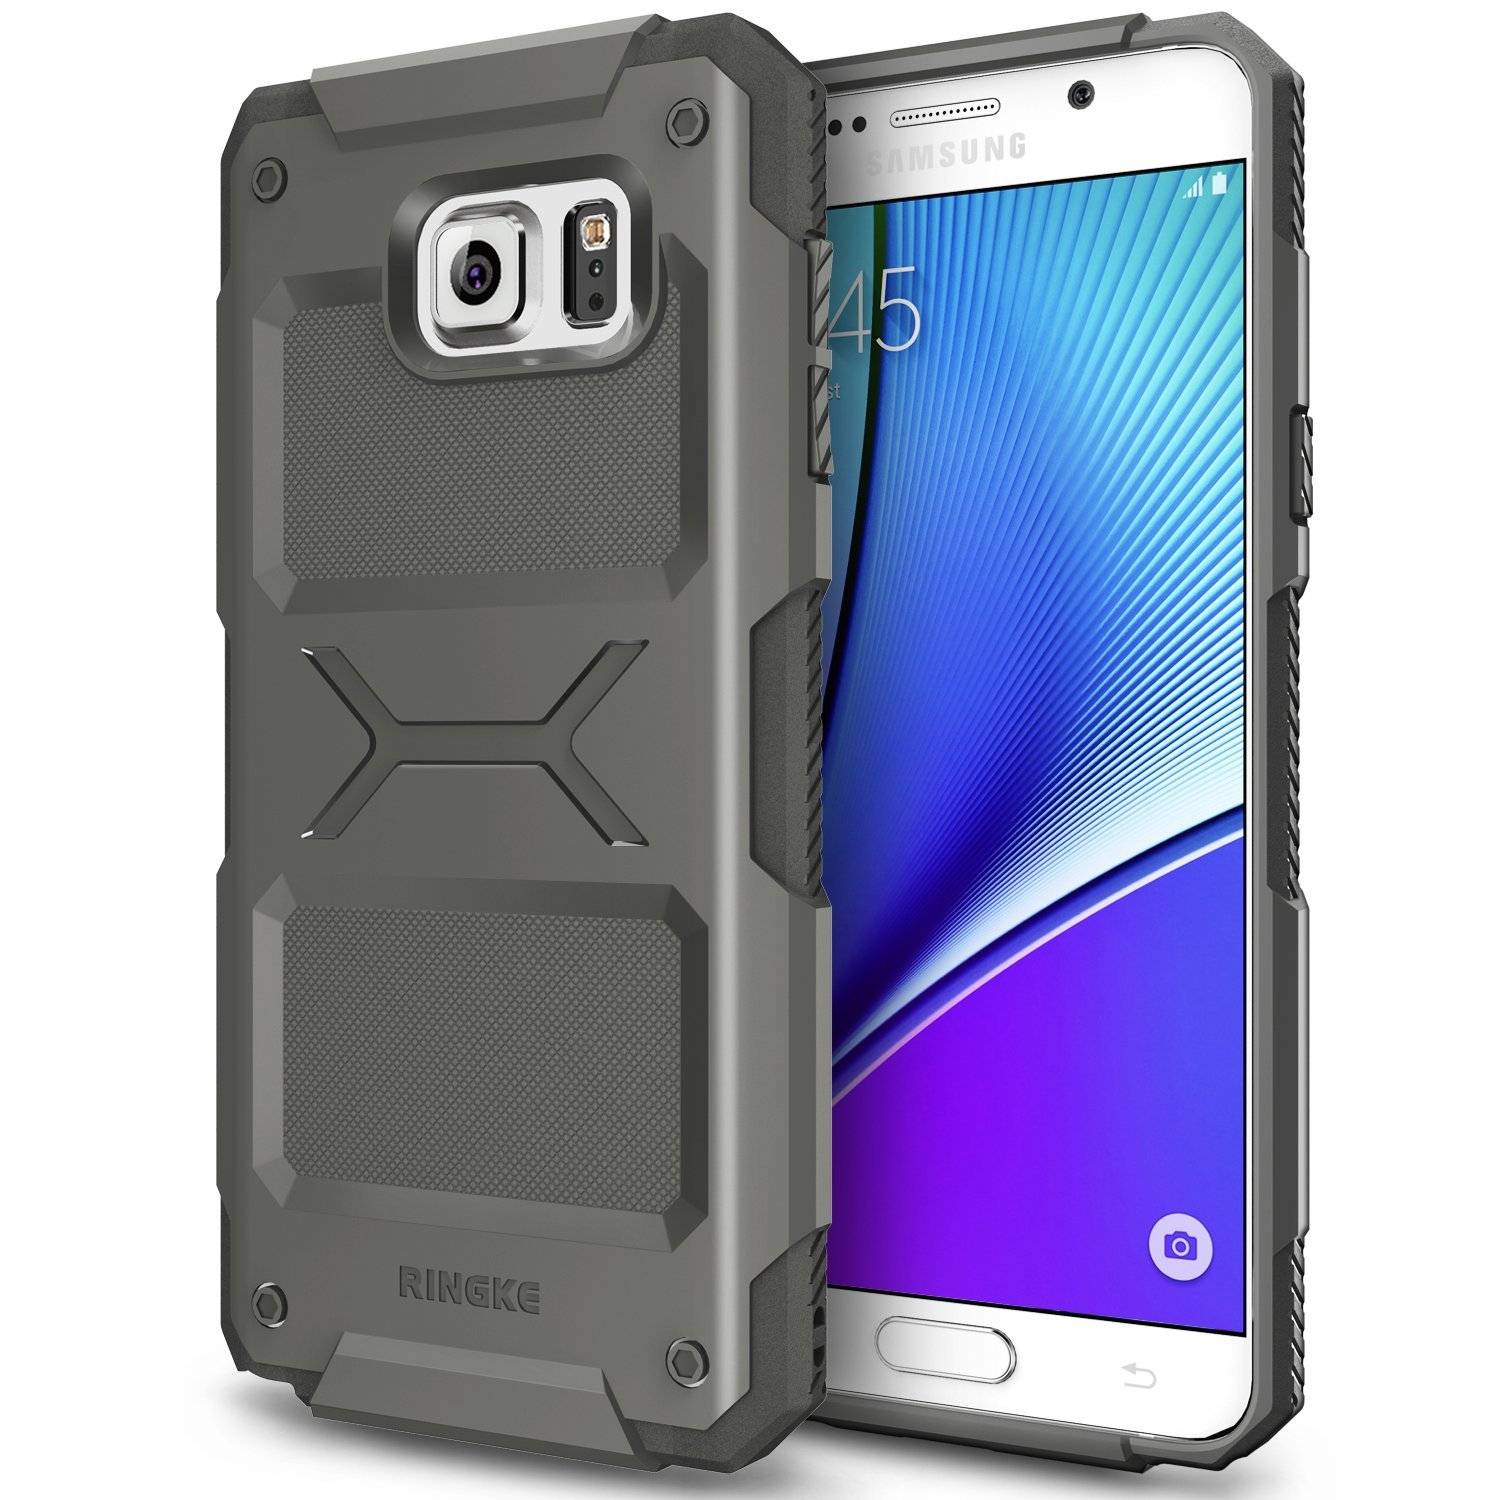 Samsung Galaxy Note 5, Ringke [Gray] REBEL Series Improved Strength Flexible TPU Defensive Hybrid Case